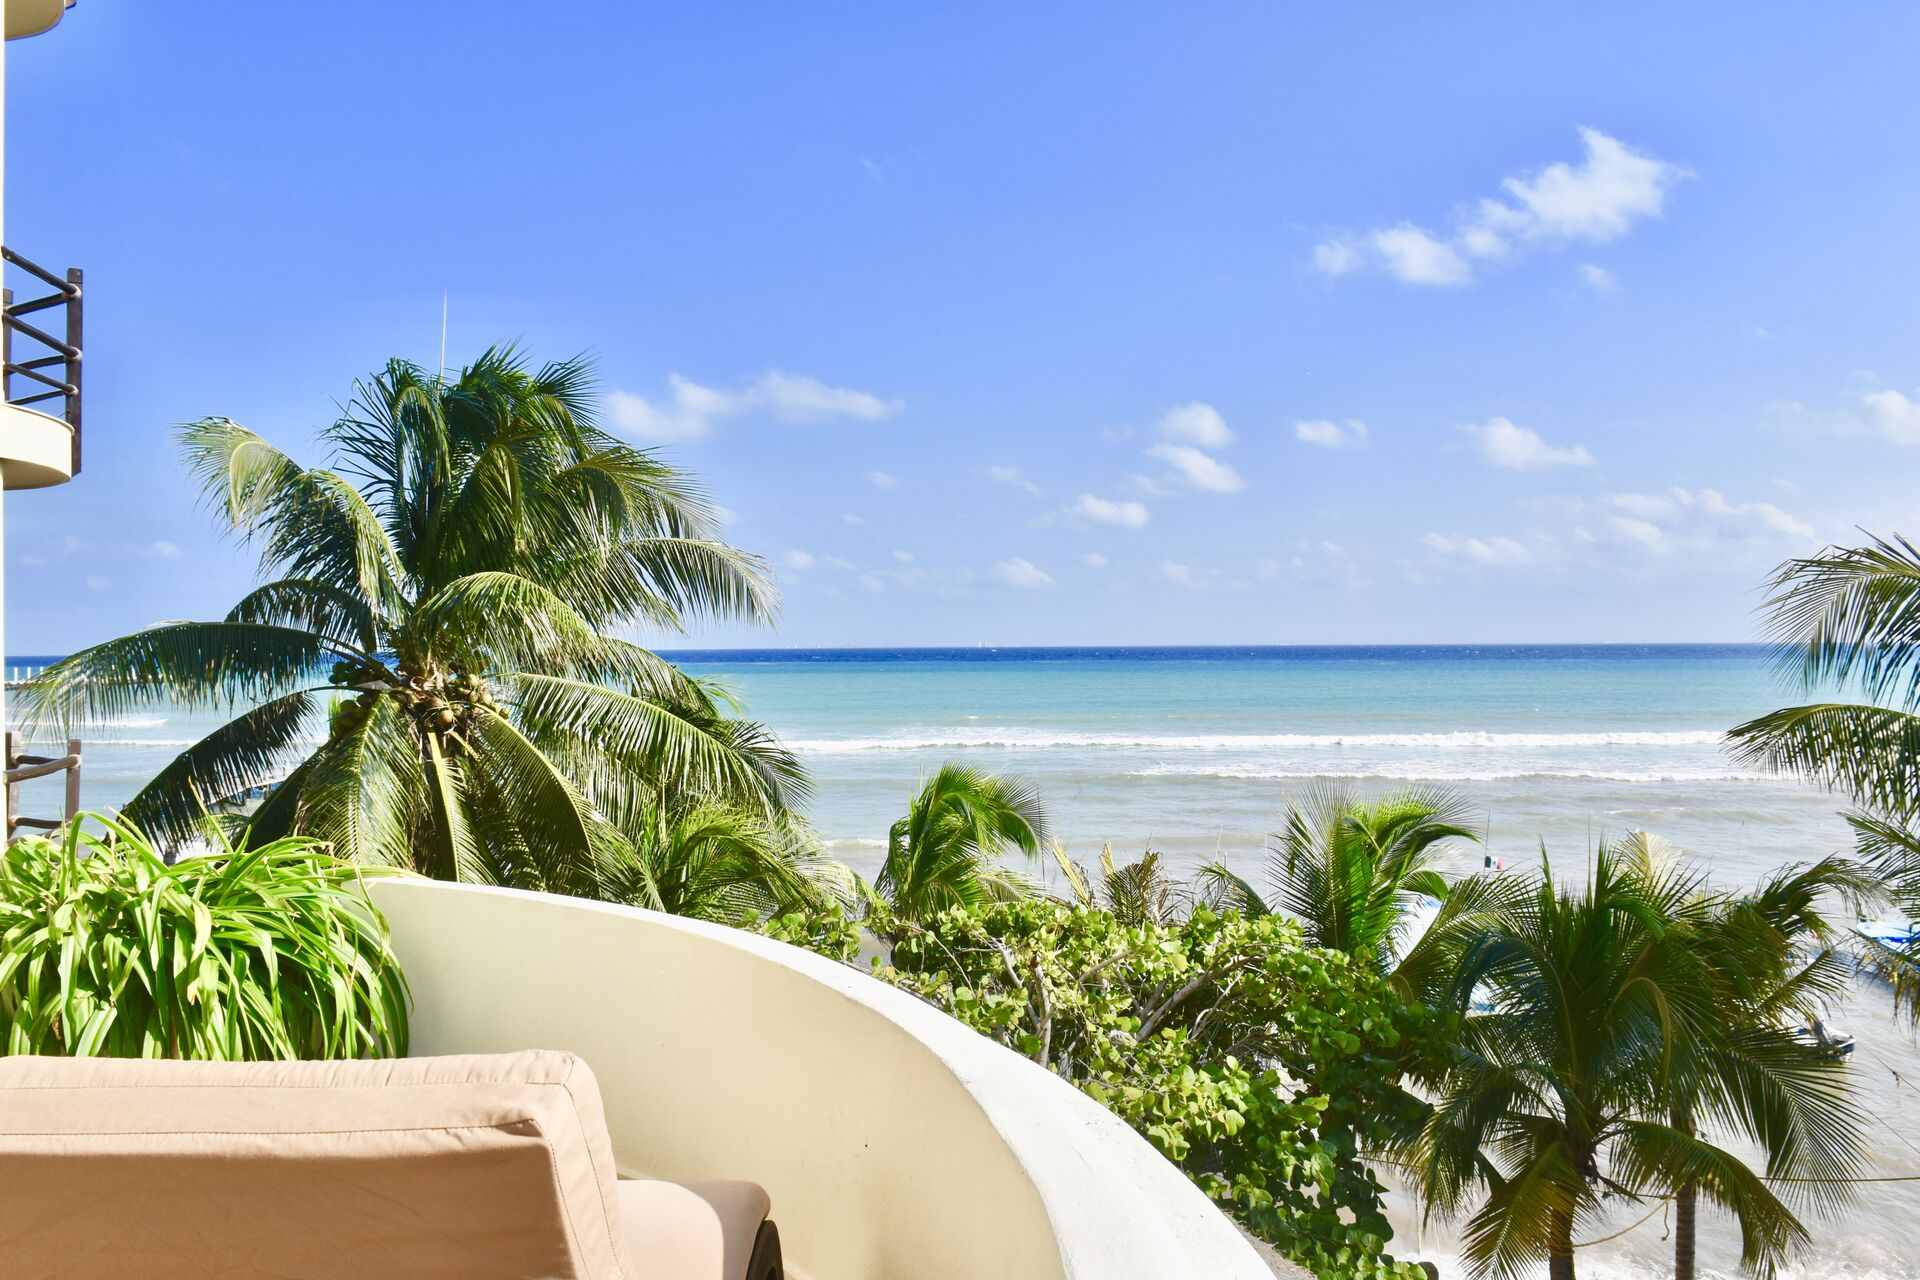 Ocean front suite, incredible ocean view balcony with chairs and hammock.